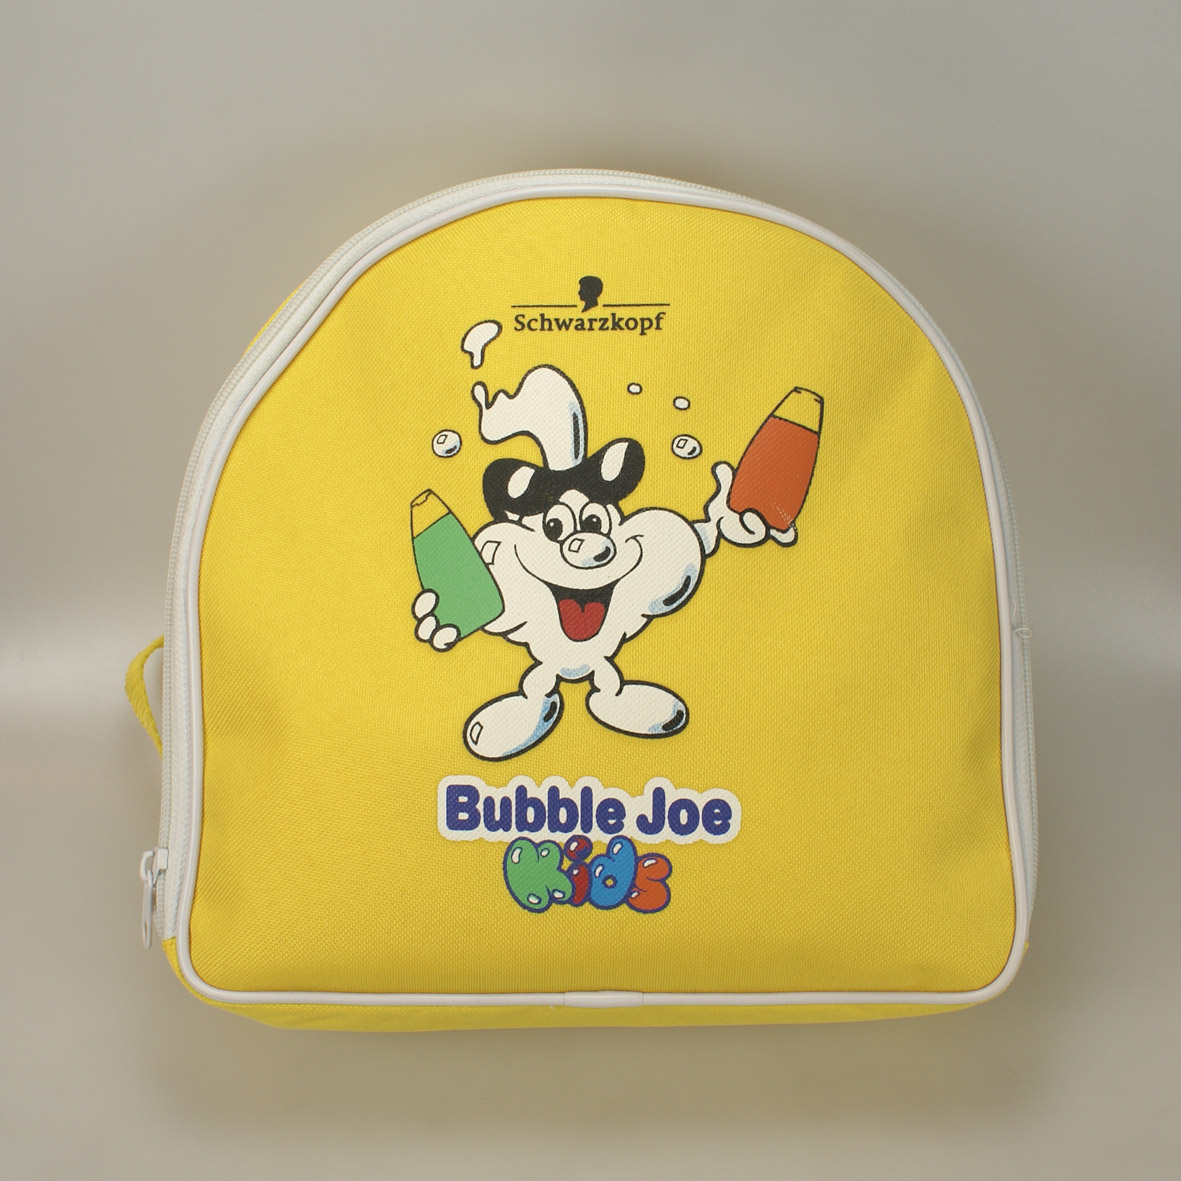 Rugzakje Bubble Joe Image